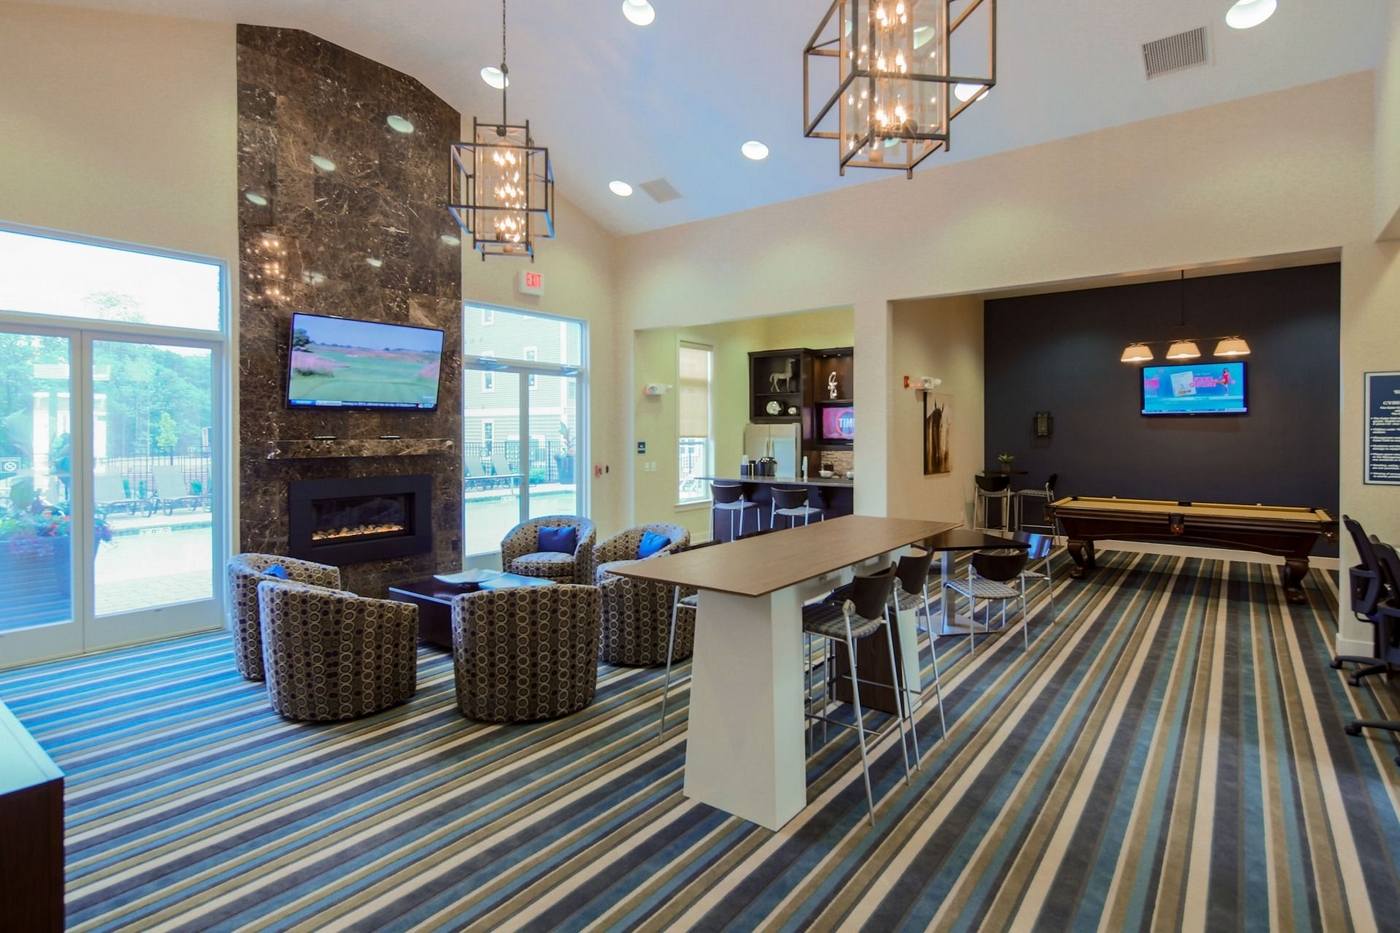 Interior image of club house with couches, fireplace, pool t